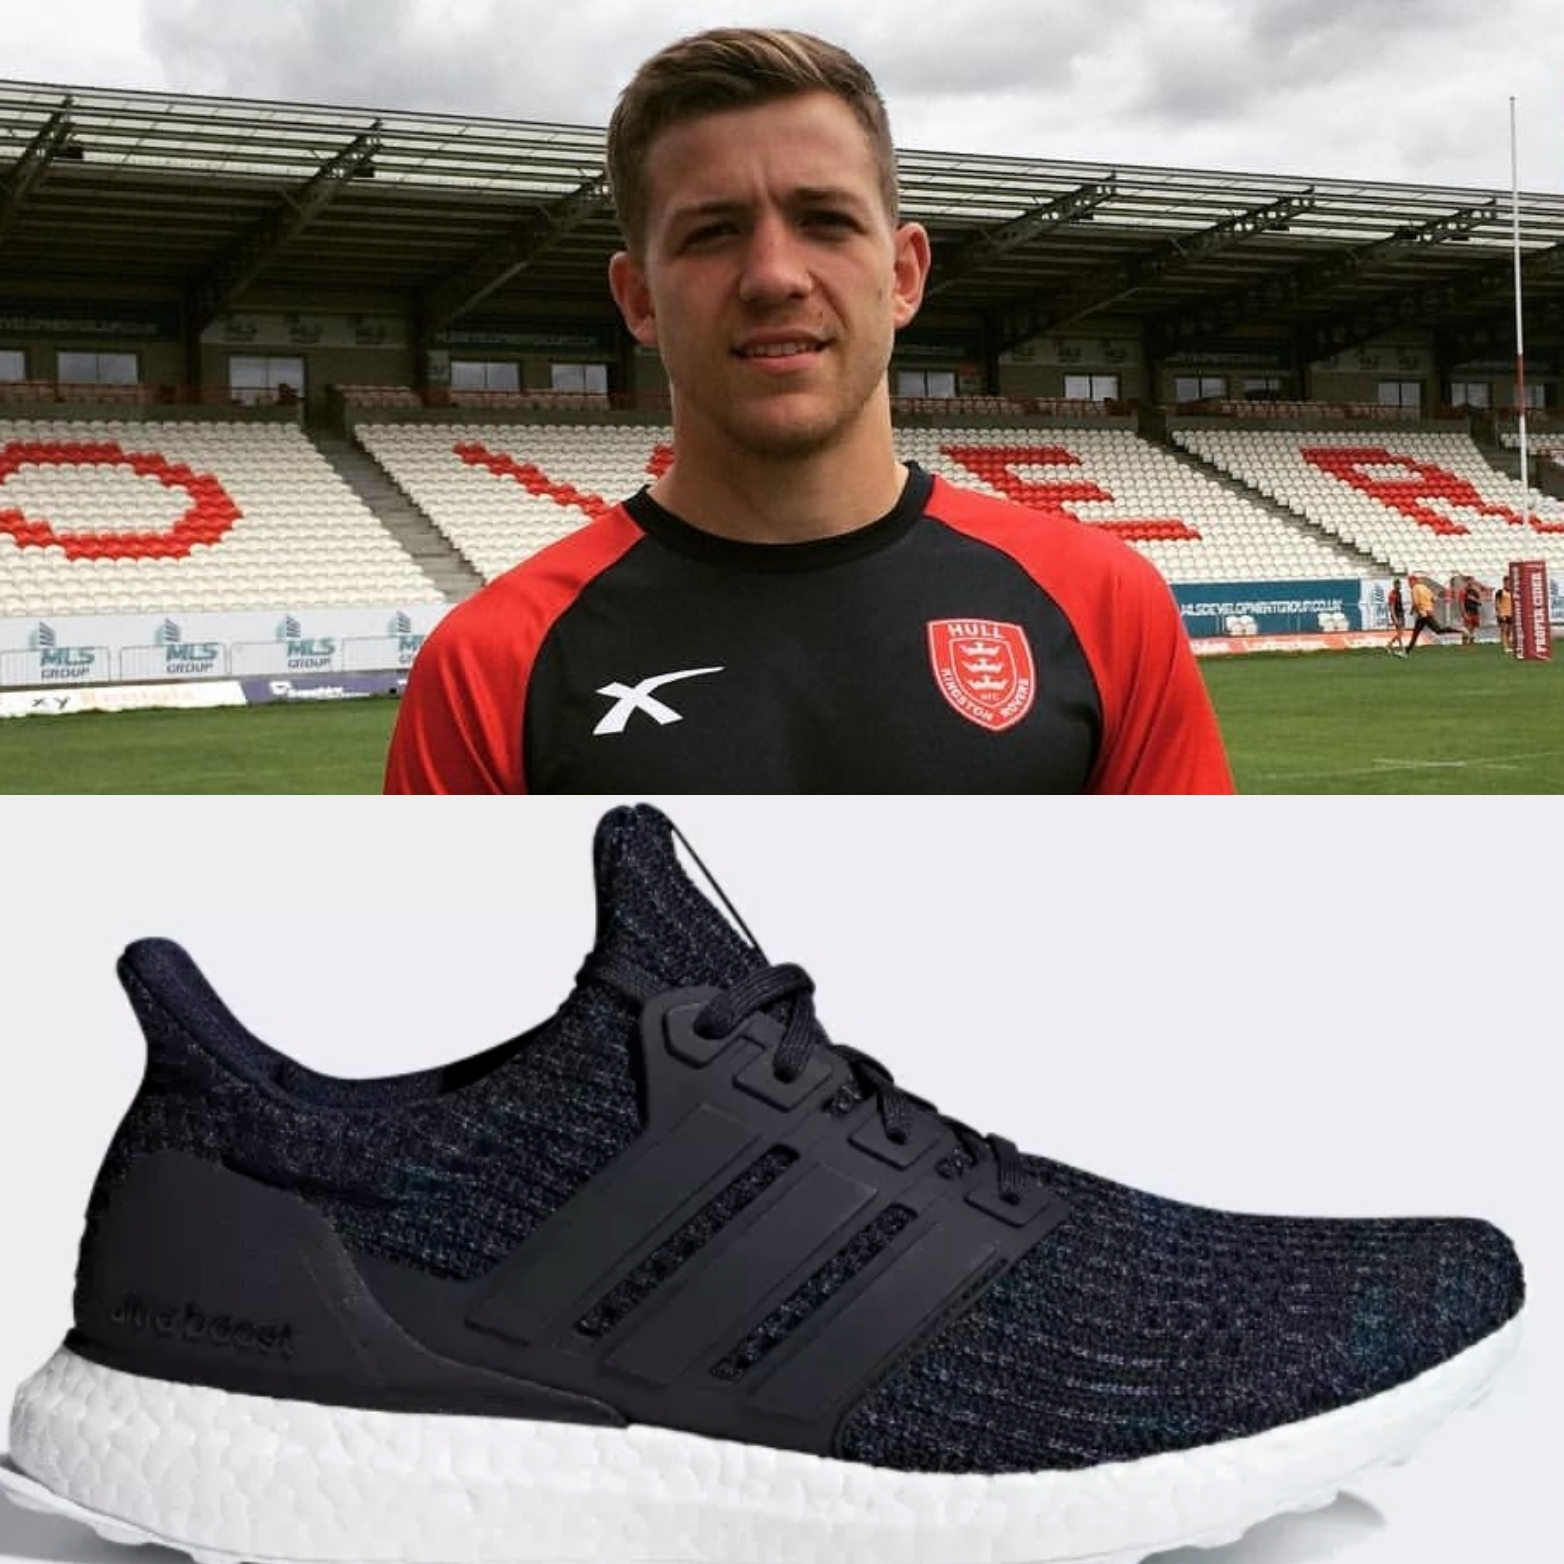 What a season Atkin has had on the field, but what do you think of his choice of footwear off the field?